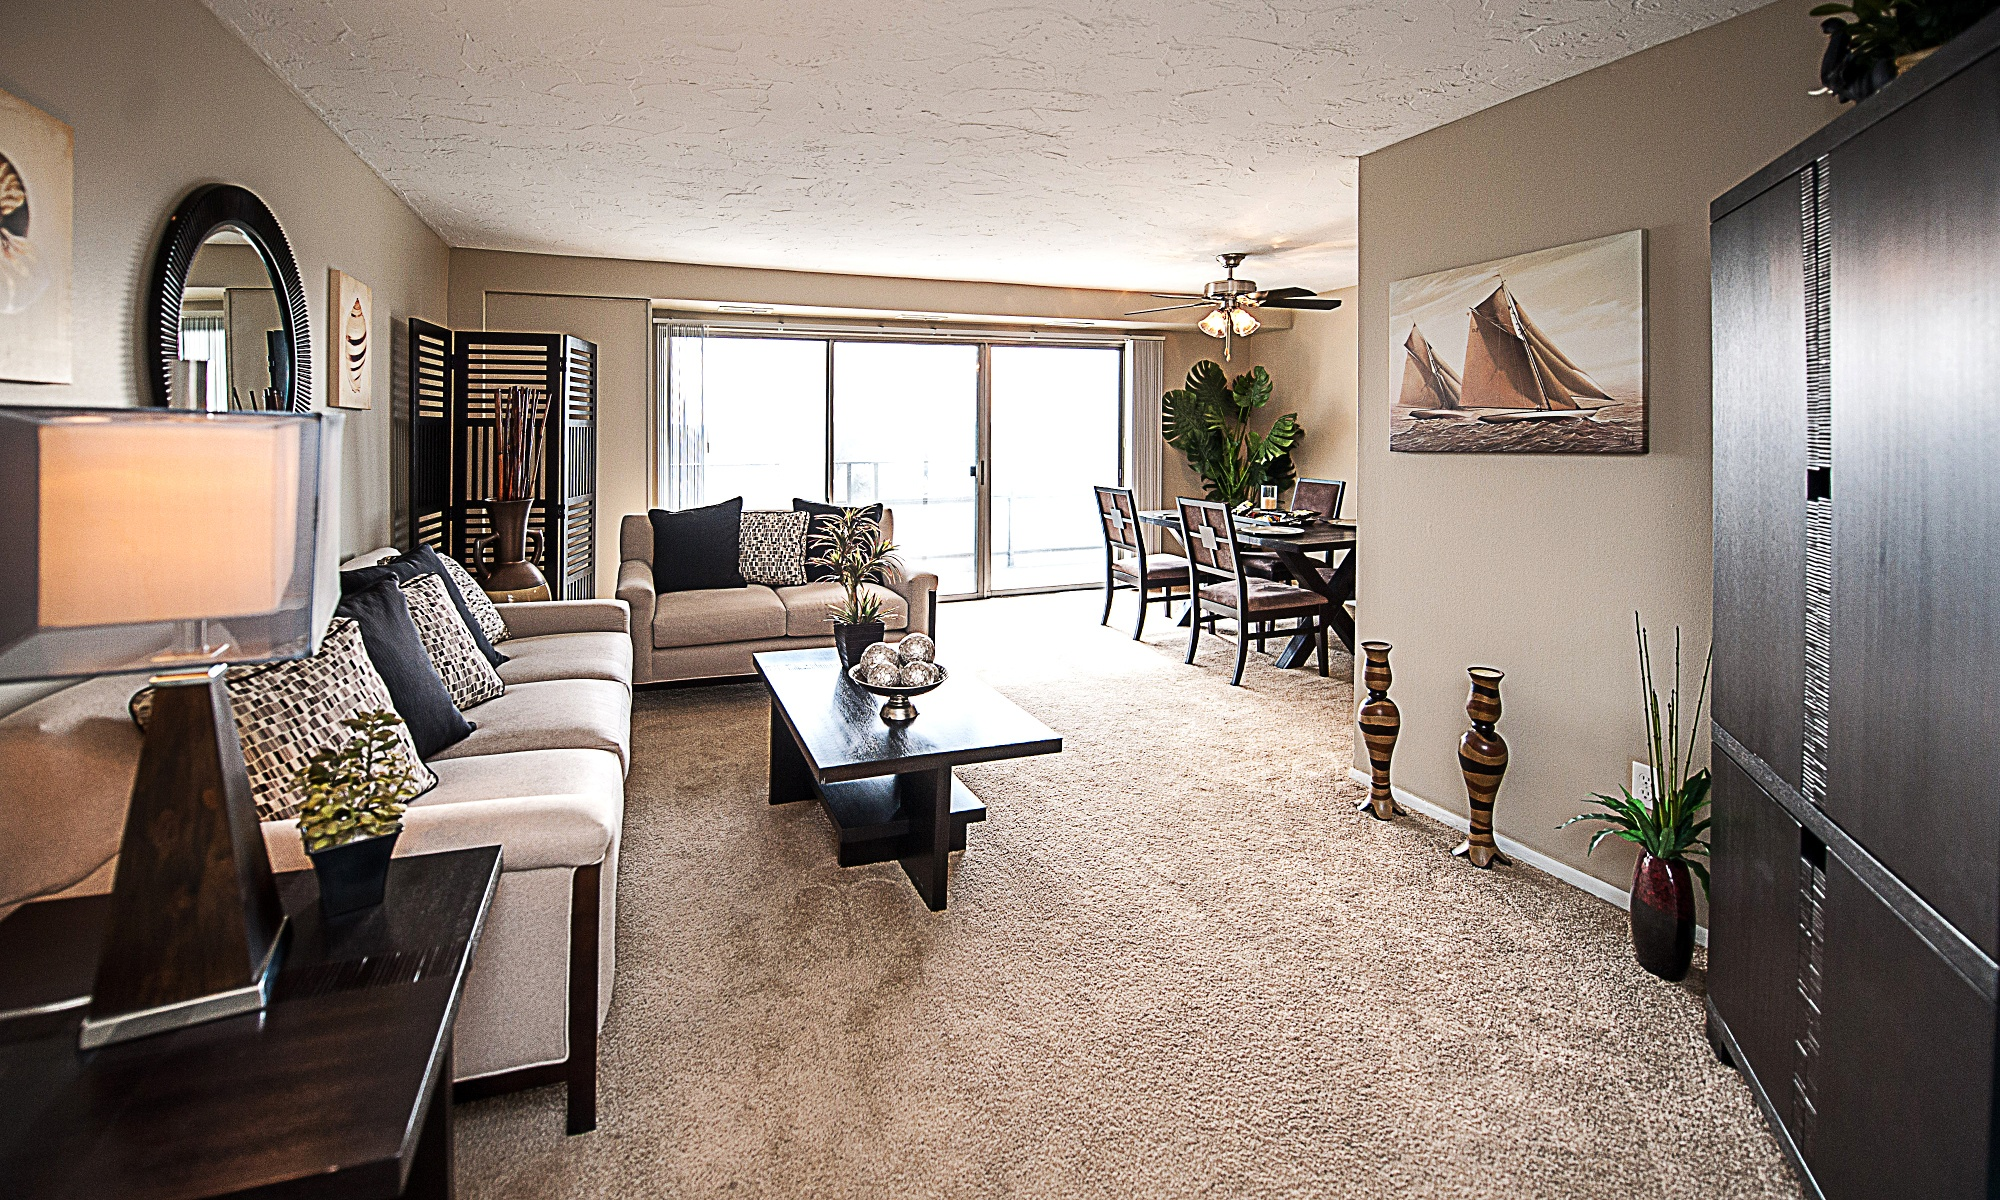 Apartments in Euclid, OH